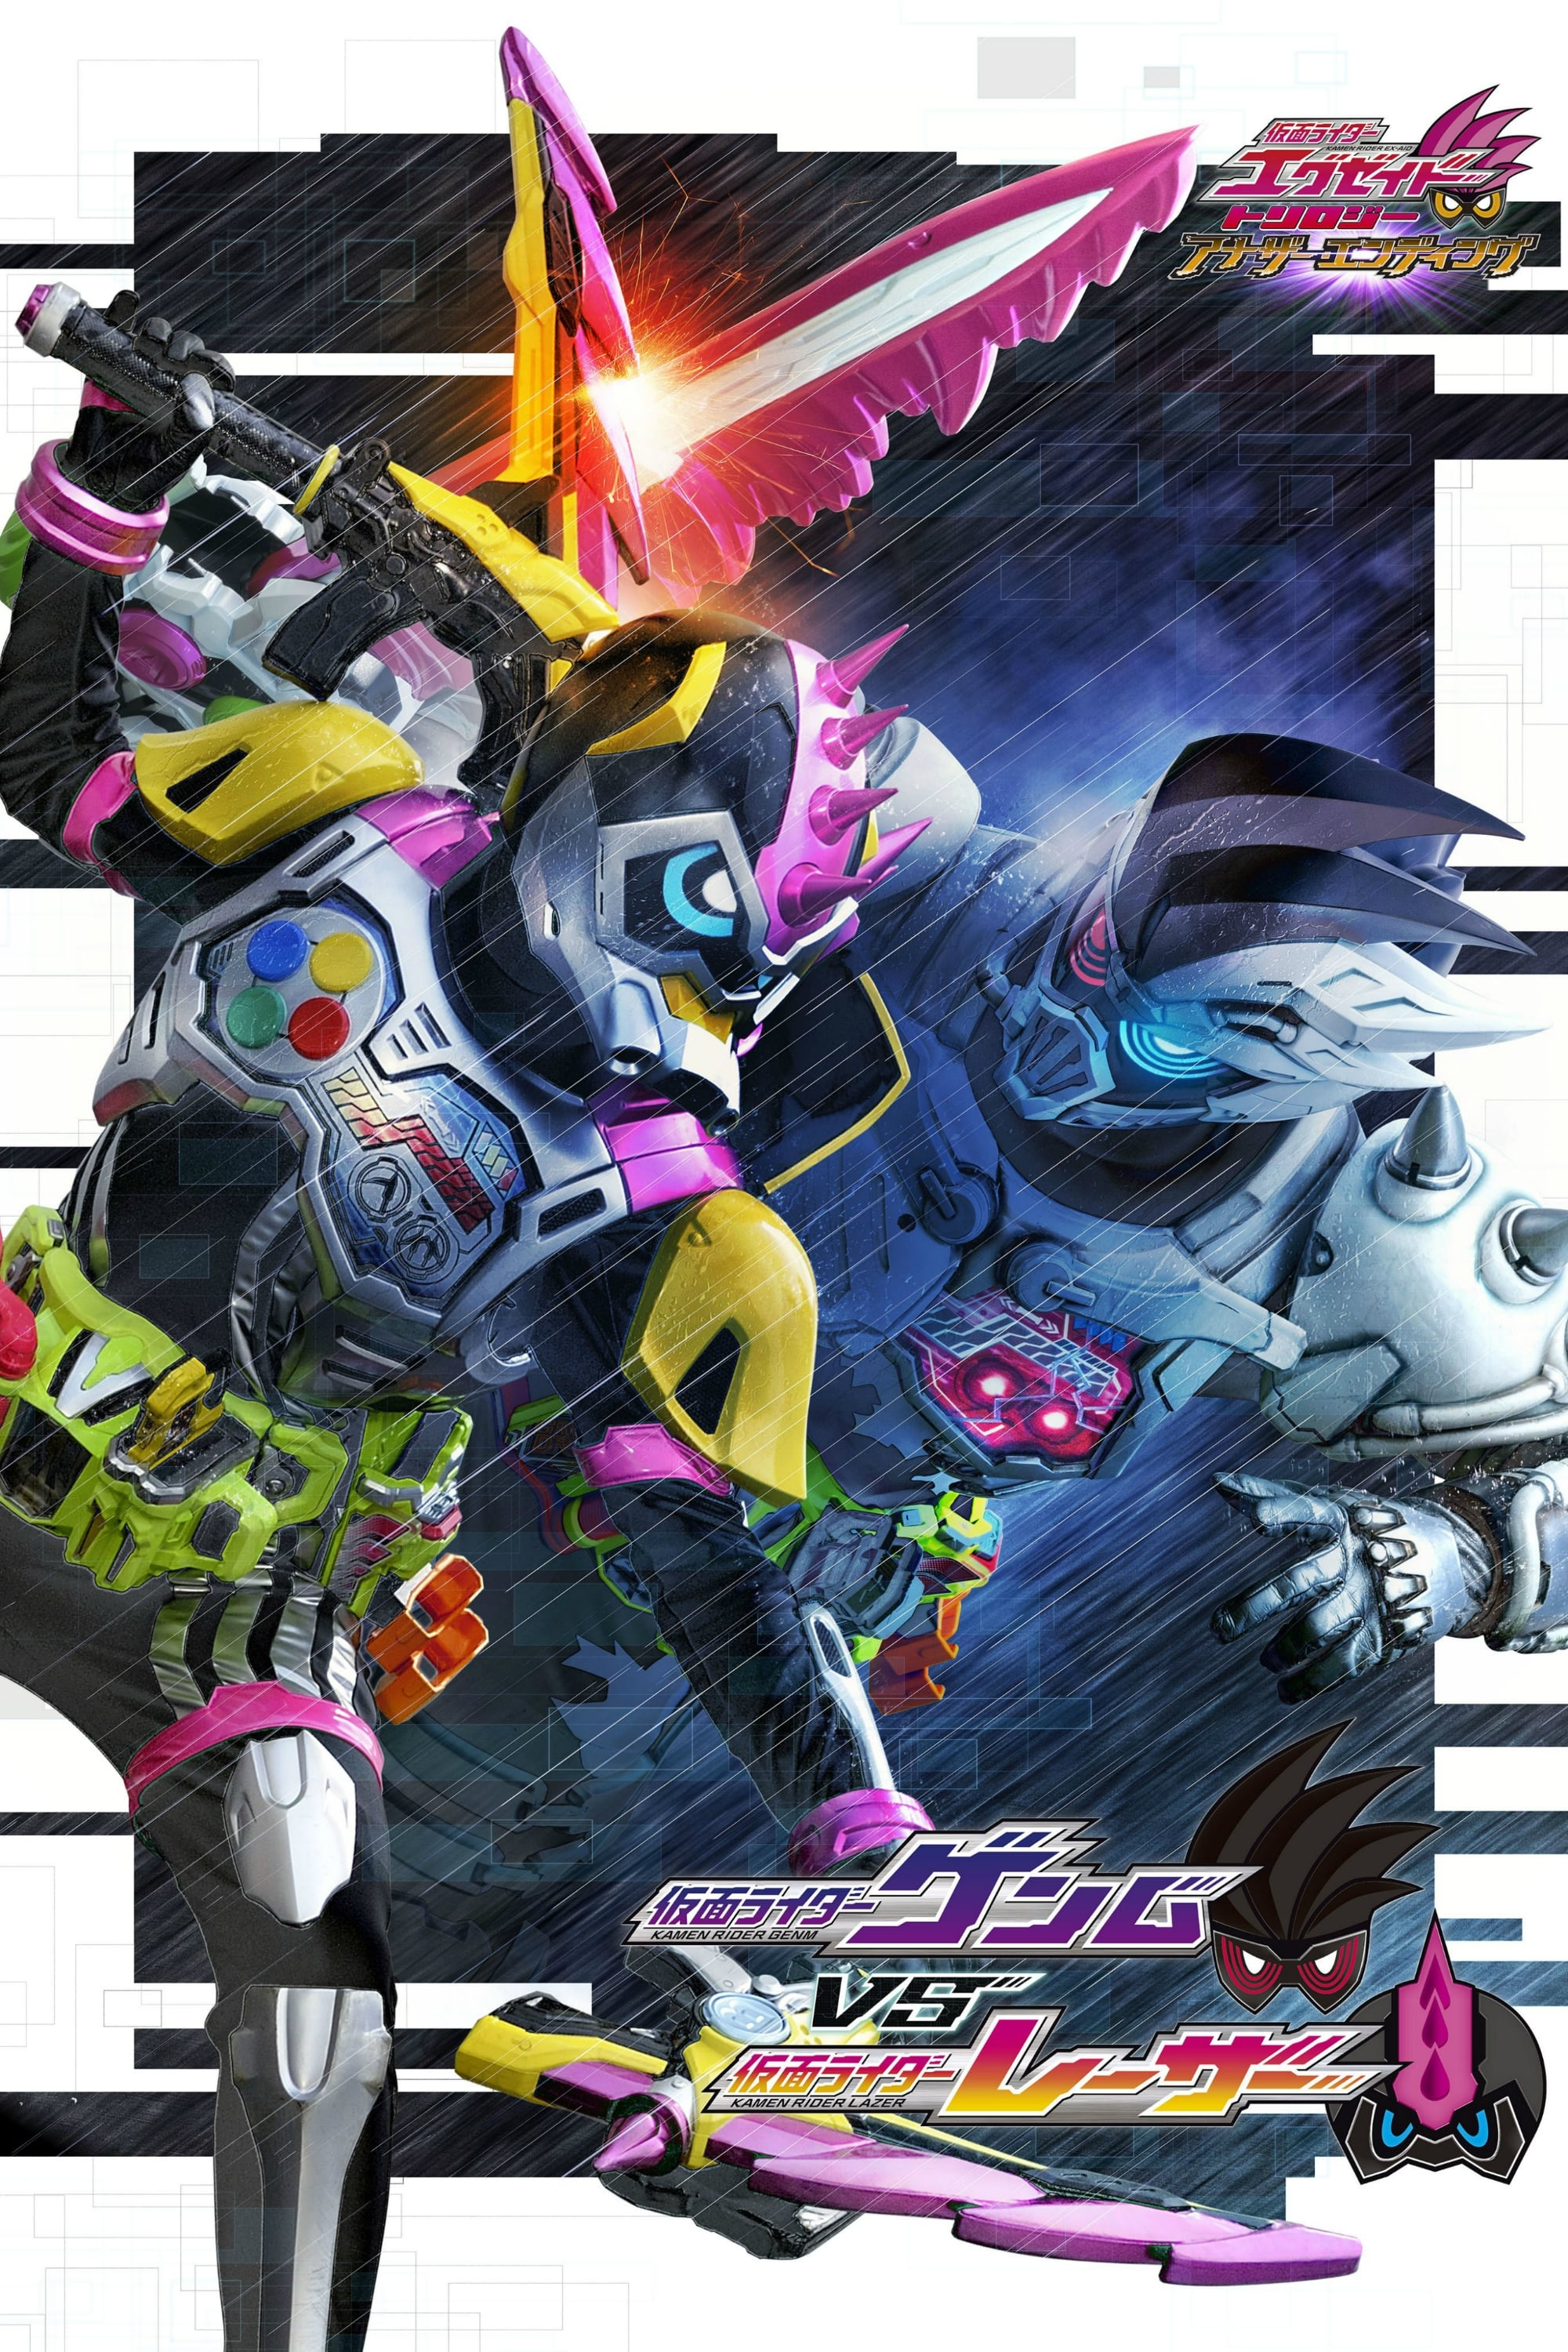 Kamen Rider Ex-Aid Trilogy: Another Ending - Kamen Rider Genm VS Lazer (2018)